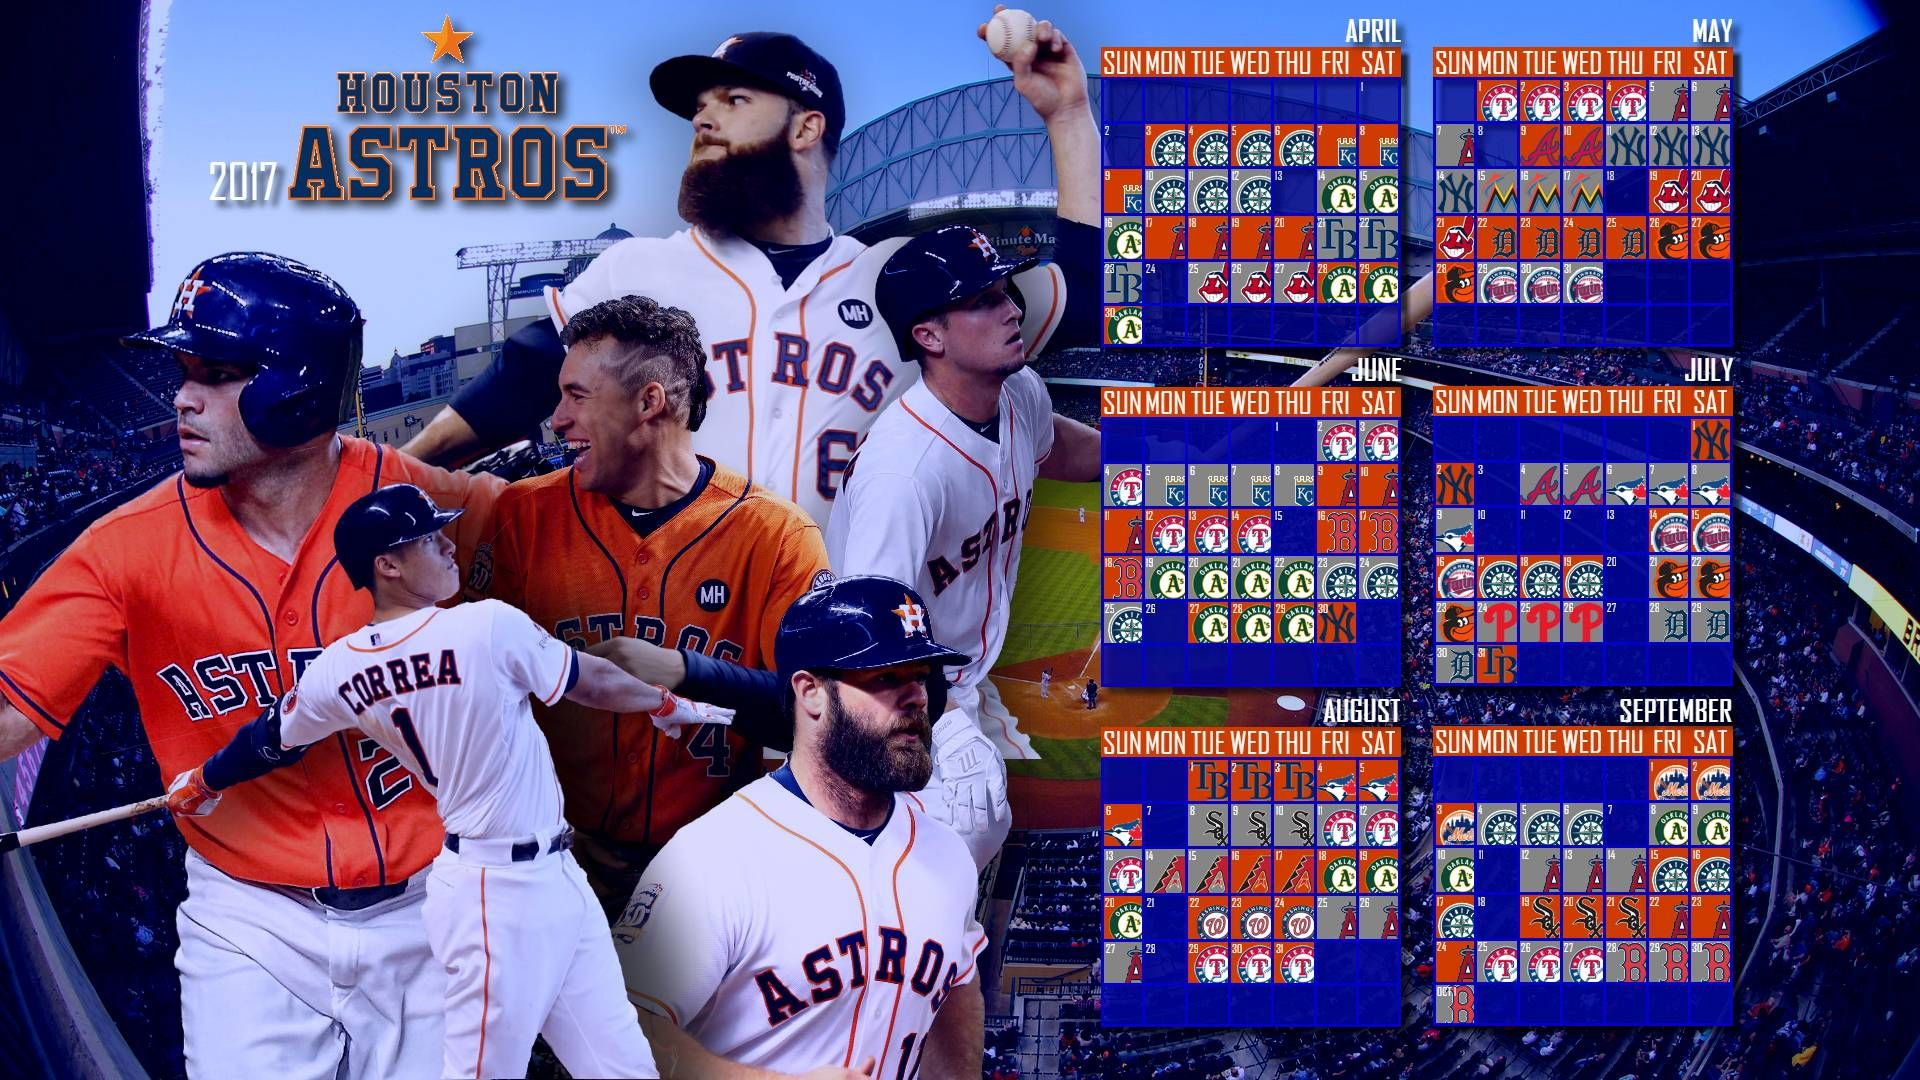 2017 Houston Astros Calendar Astros, Houston astros, Houston